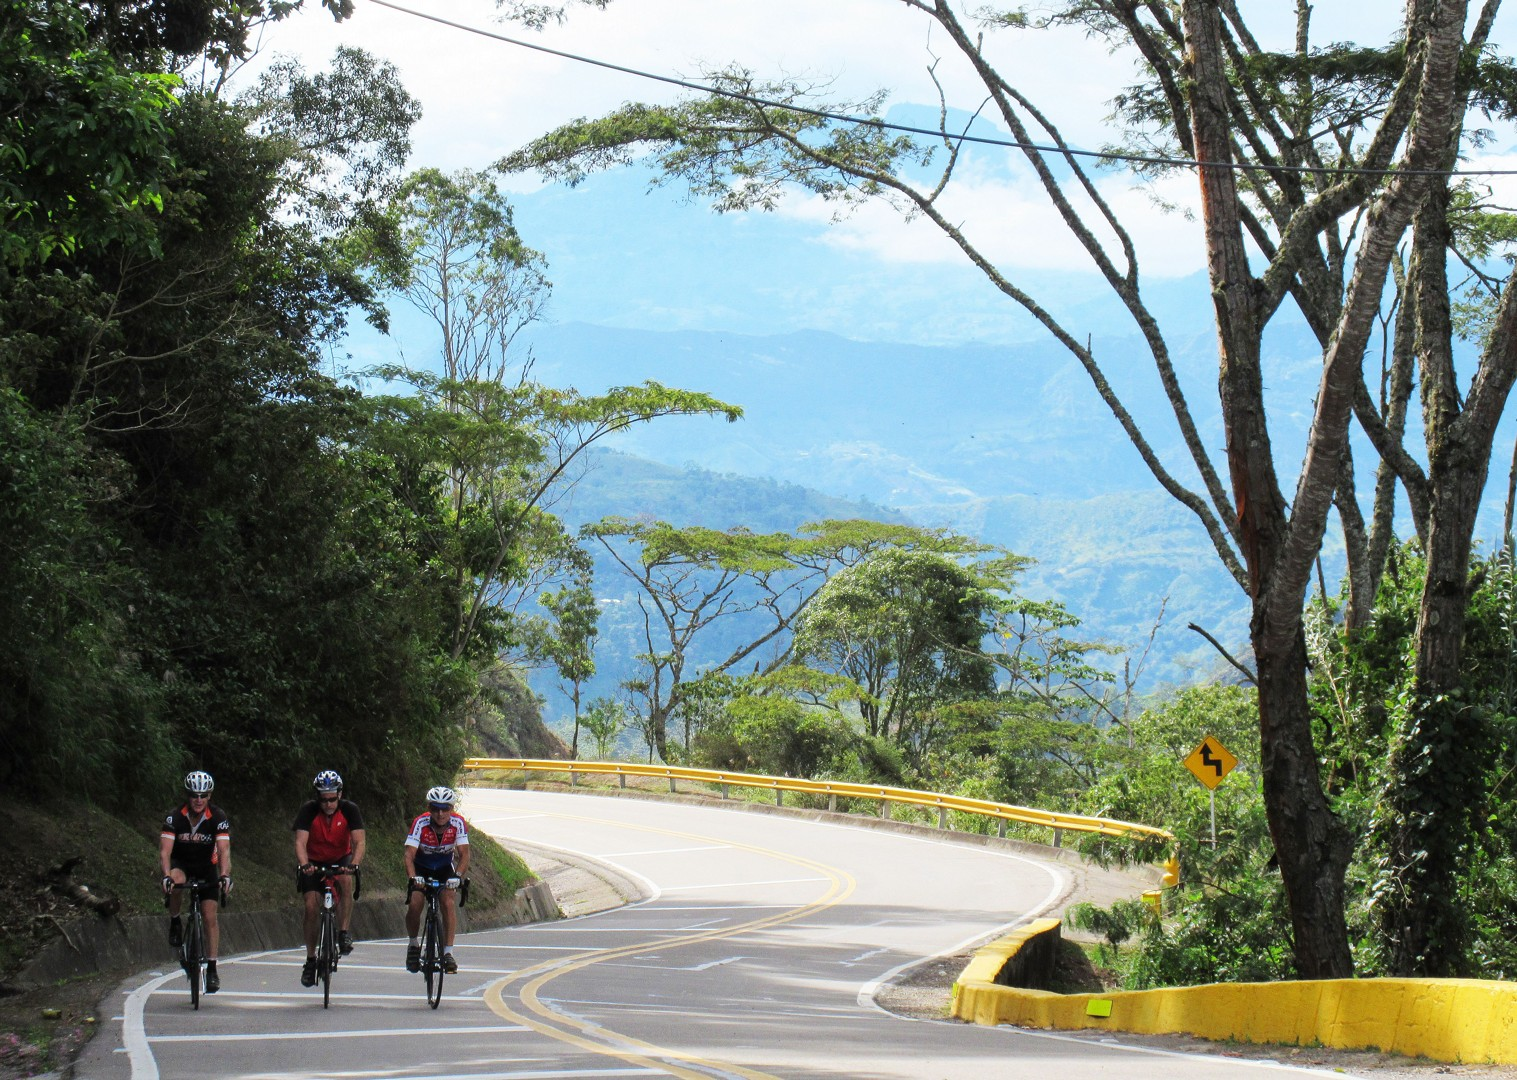 saddle-skedaddle-guided-road-cycling-holiday-emerald-mountains-colombia-caribbean-beaches.JPG - Colombia - Emerald Mountains - Road Cycling